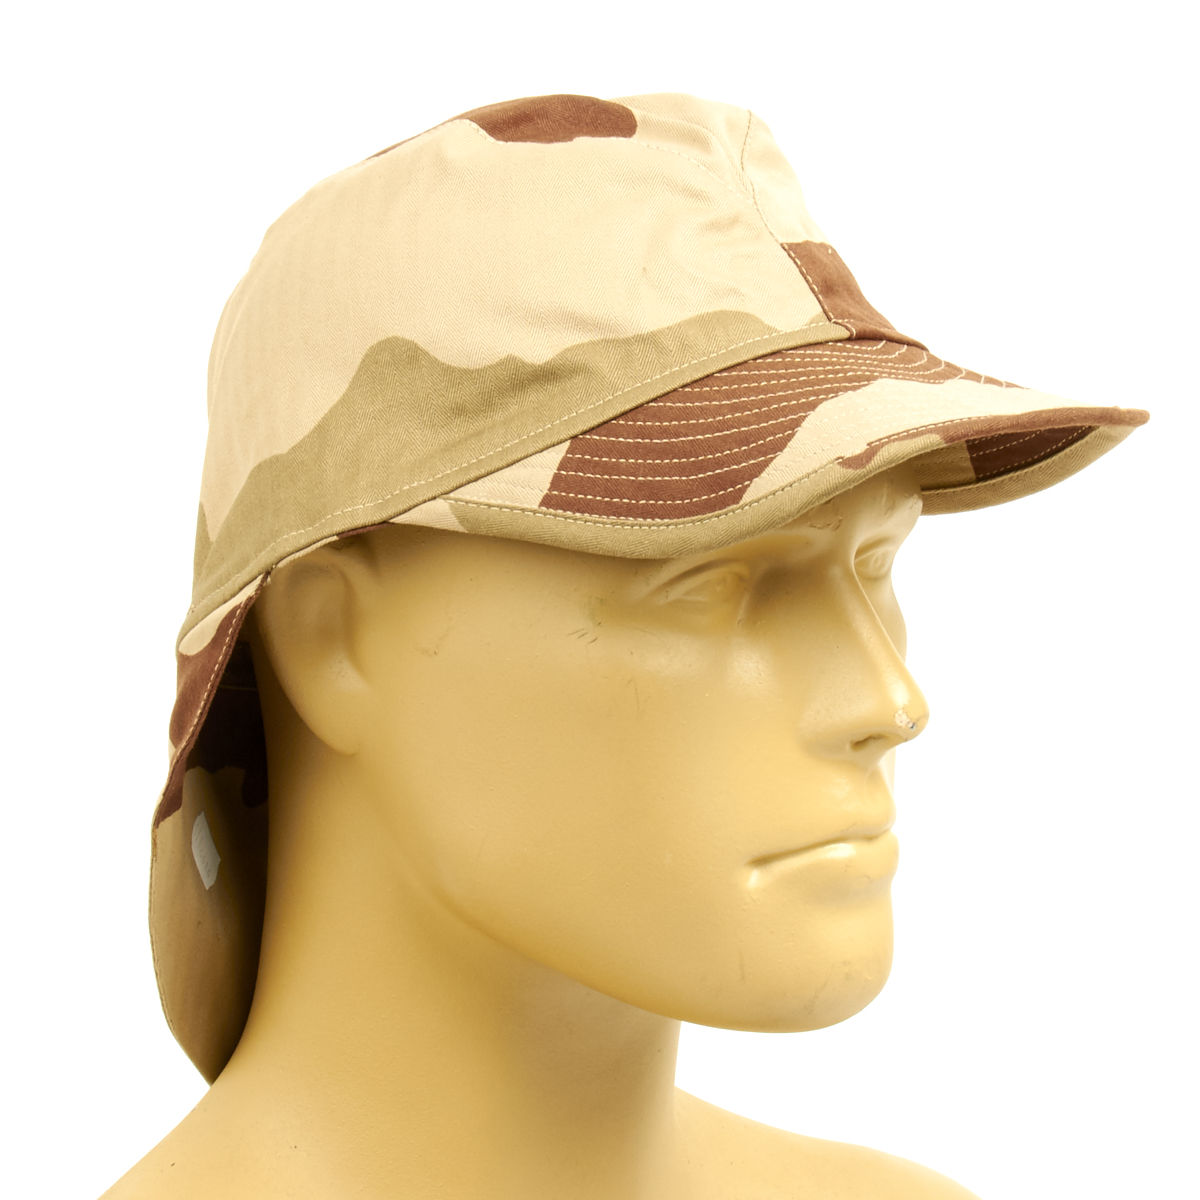 cc1fb646dce Details about French F2 CCE Field Bigeard Cap Desert Camouflage with Neck  Flap - Size 58cm